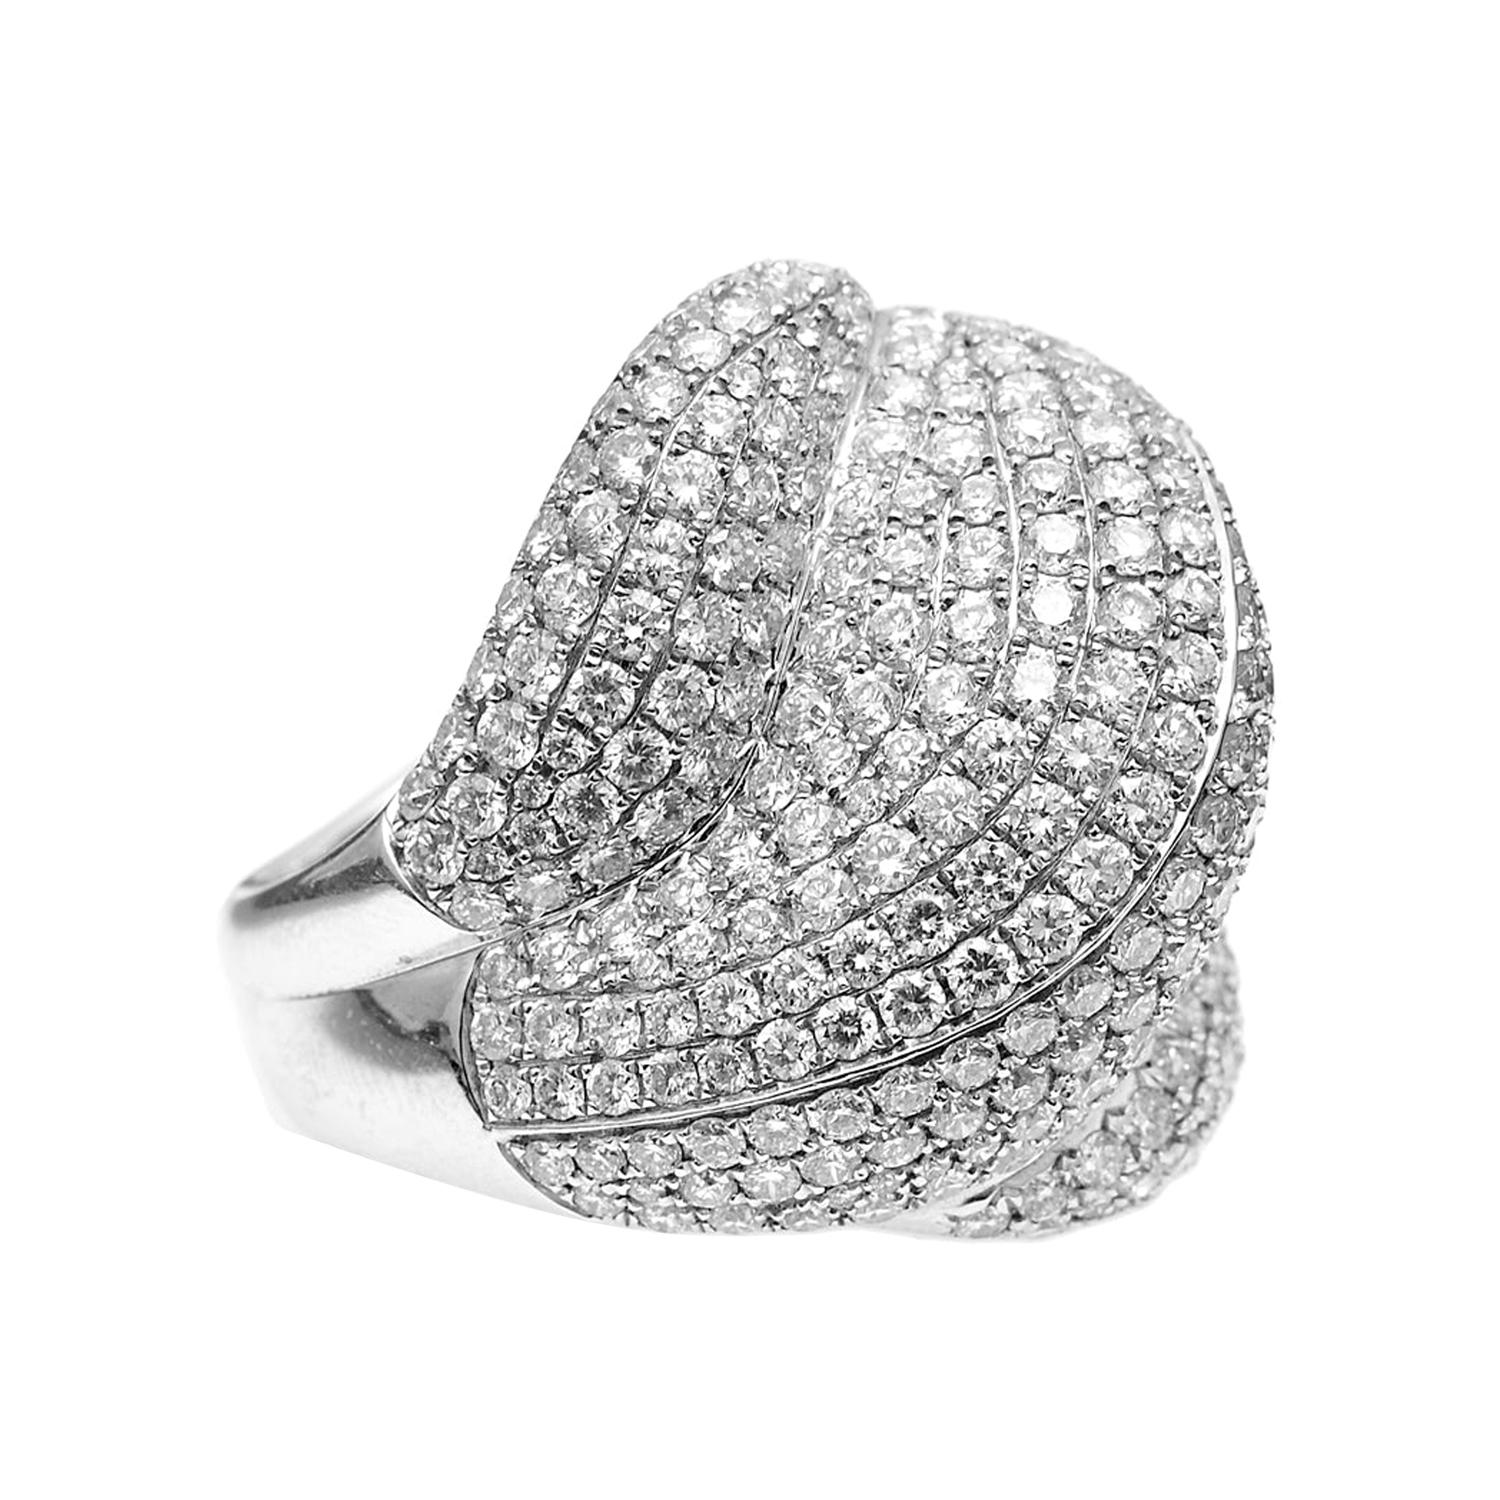 18kt White Gold Shell-shaped Diamond Pavé Cocktail Ring with 5.6ct of Diamonds